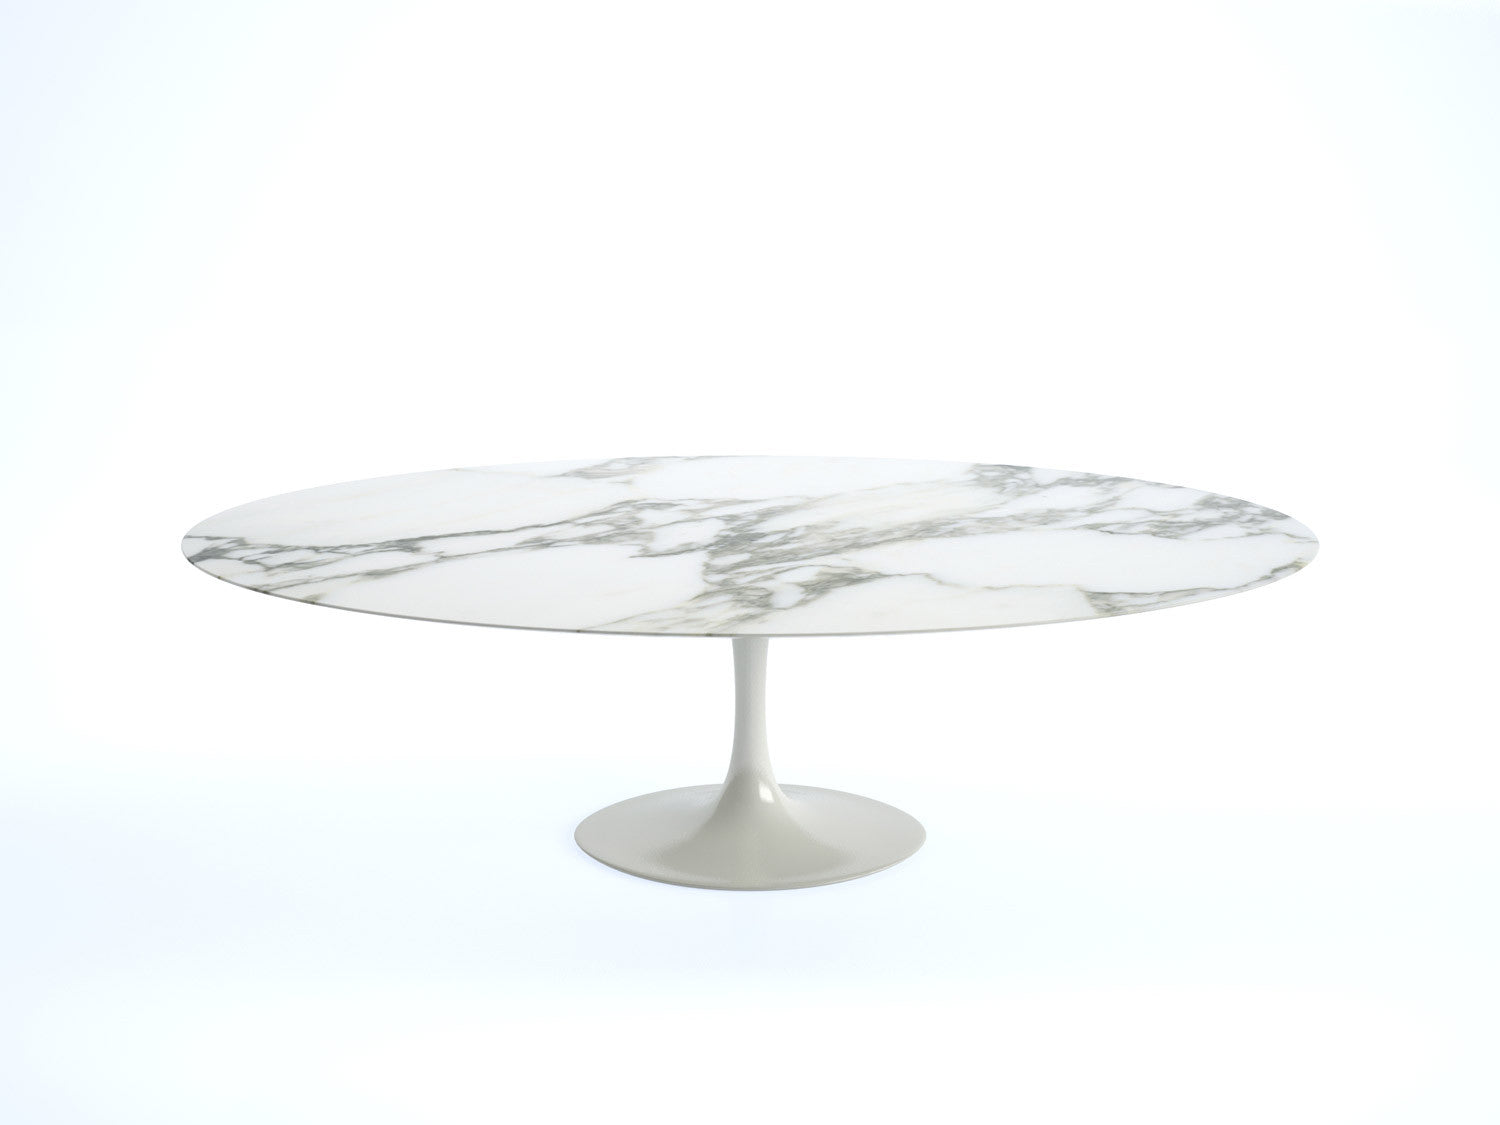 awesome selection of saarinen oval dining table. Saarinen Dining Table Oval 244cm Arabescato Marble Awesome Selection Of E